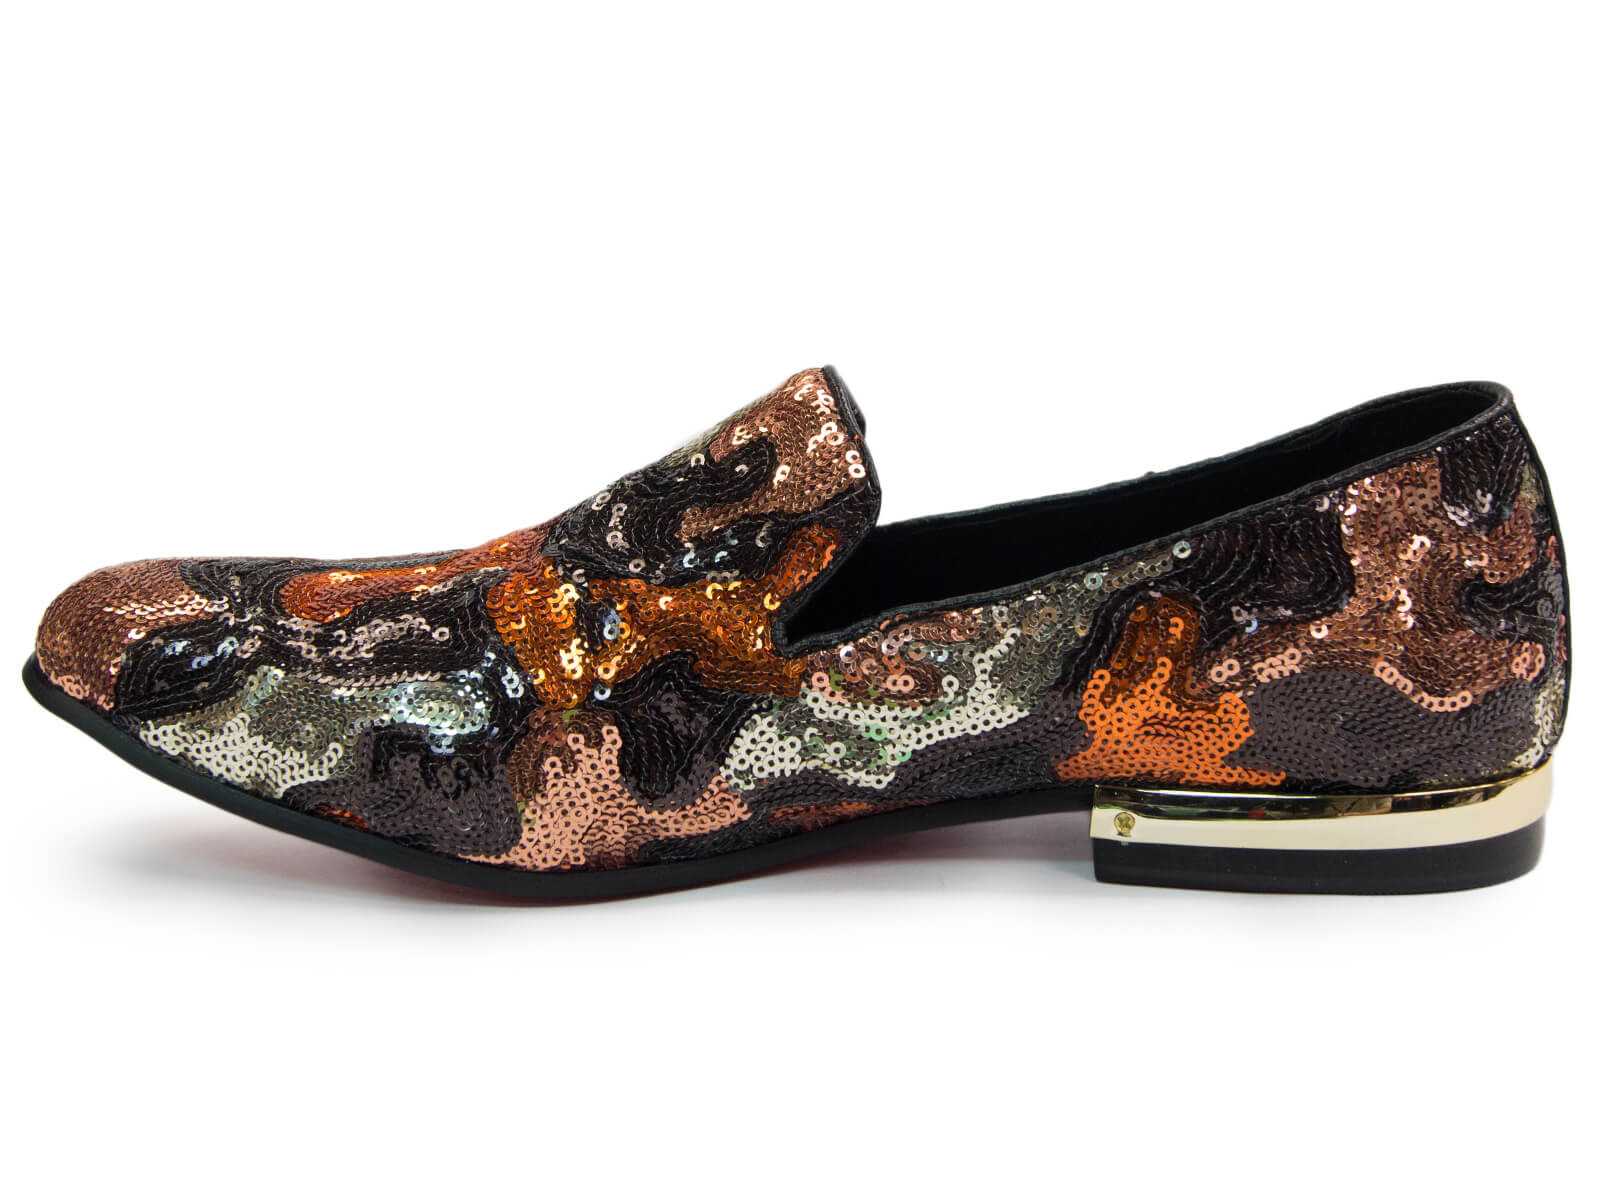 Fiesso Mens Brown Leather Allover Sequin Design Red Bottom